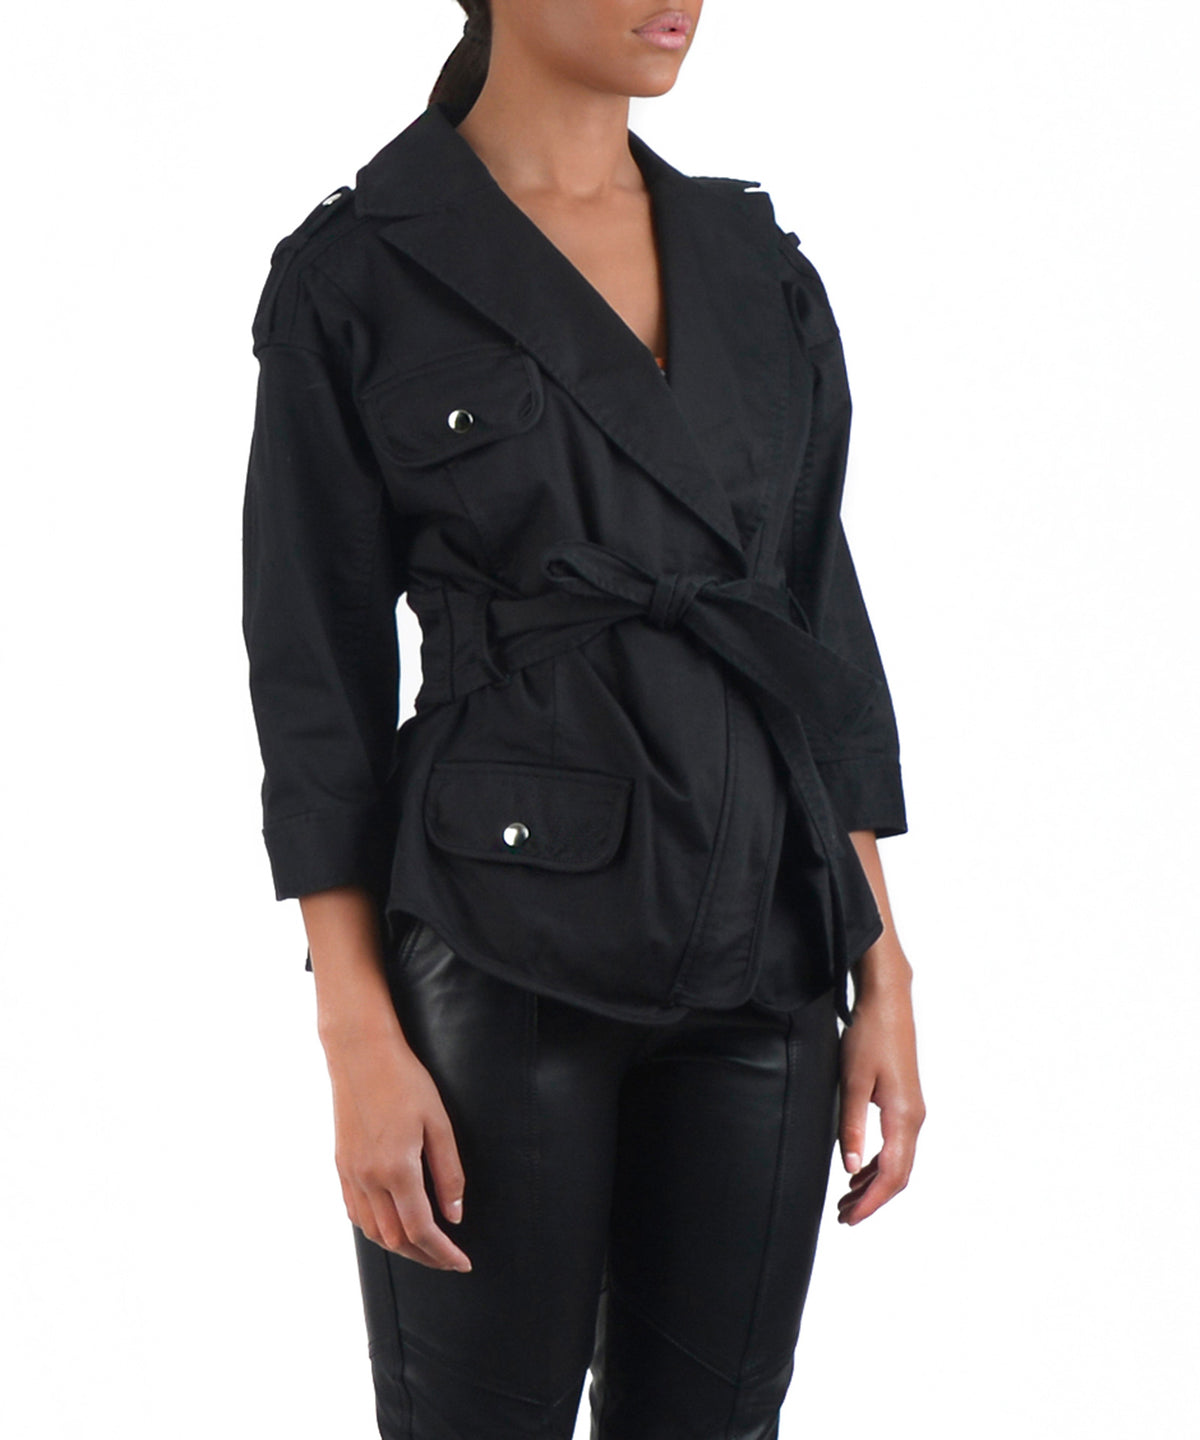 JULIE WASHED JACKET -SIDE VIEW - THE BOX BOUTIQUE